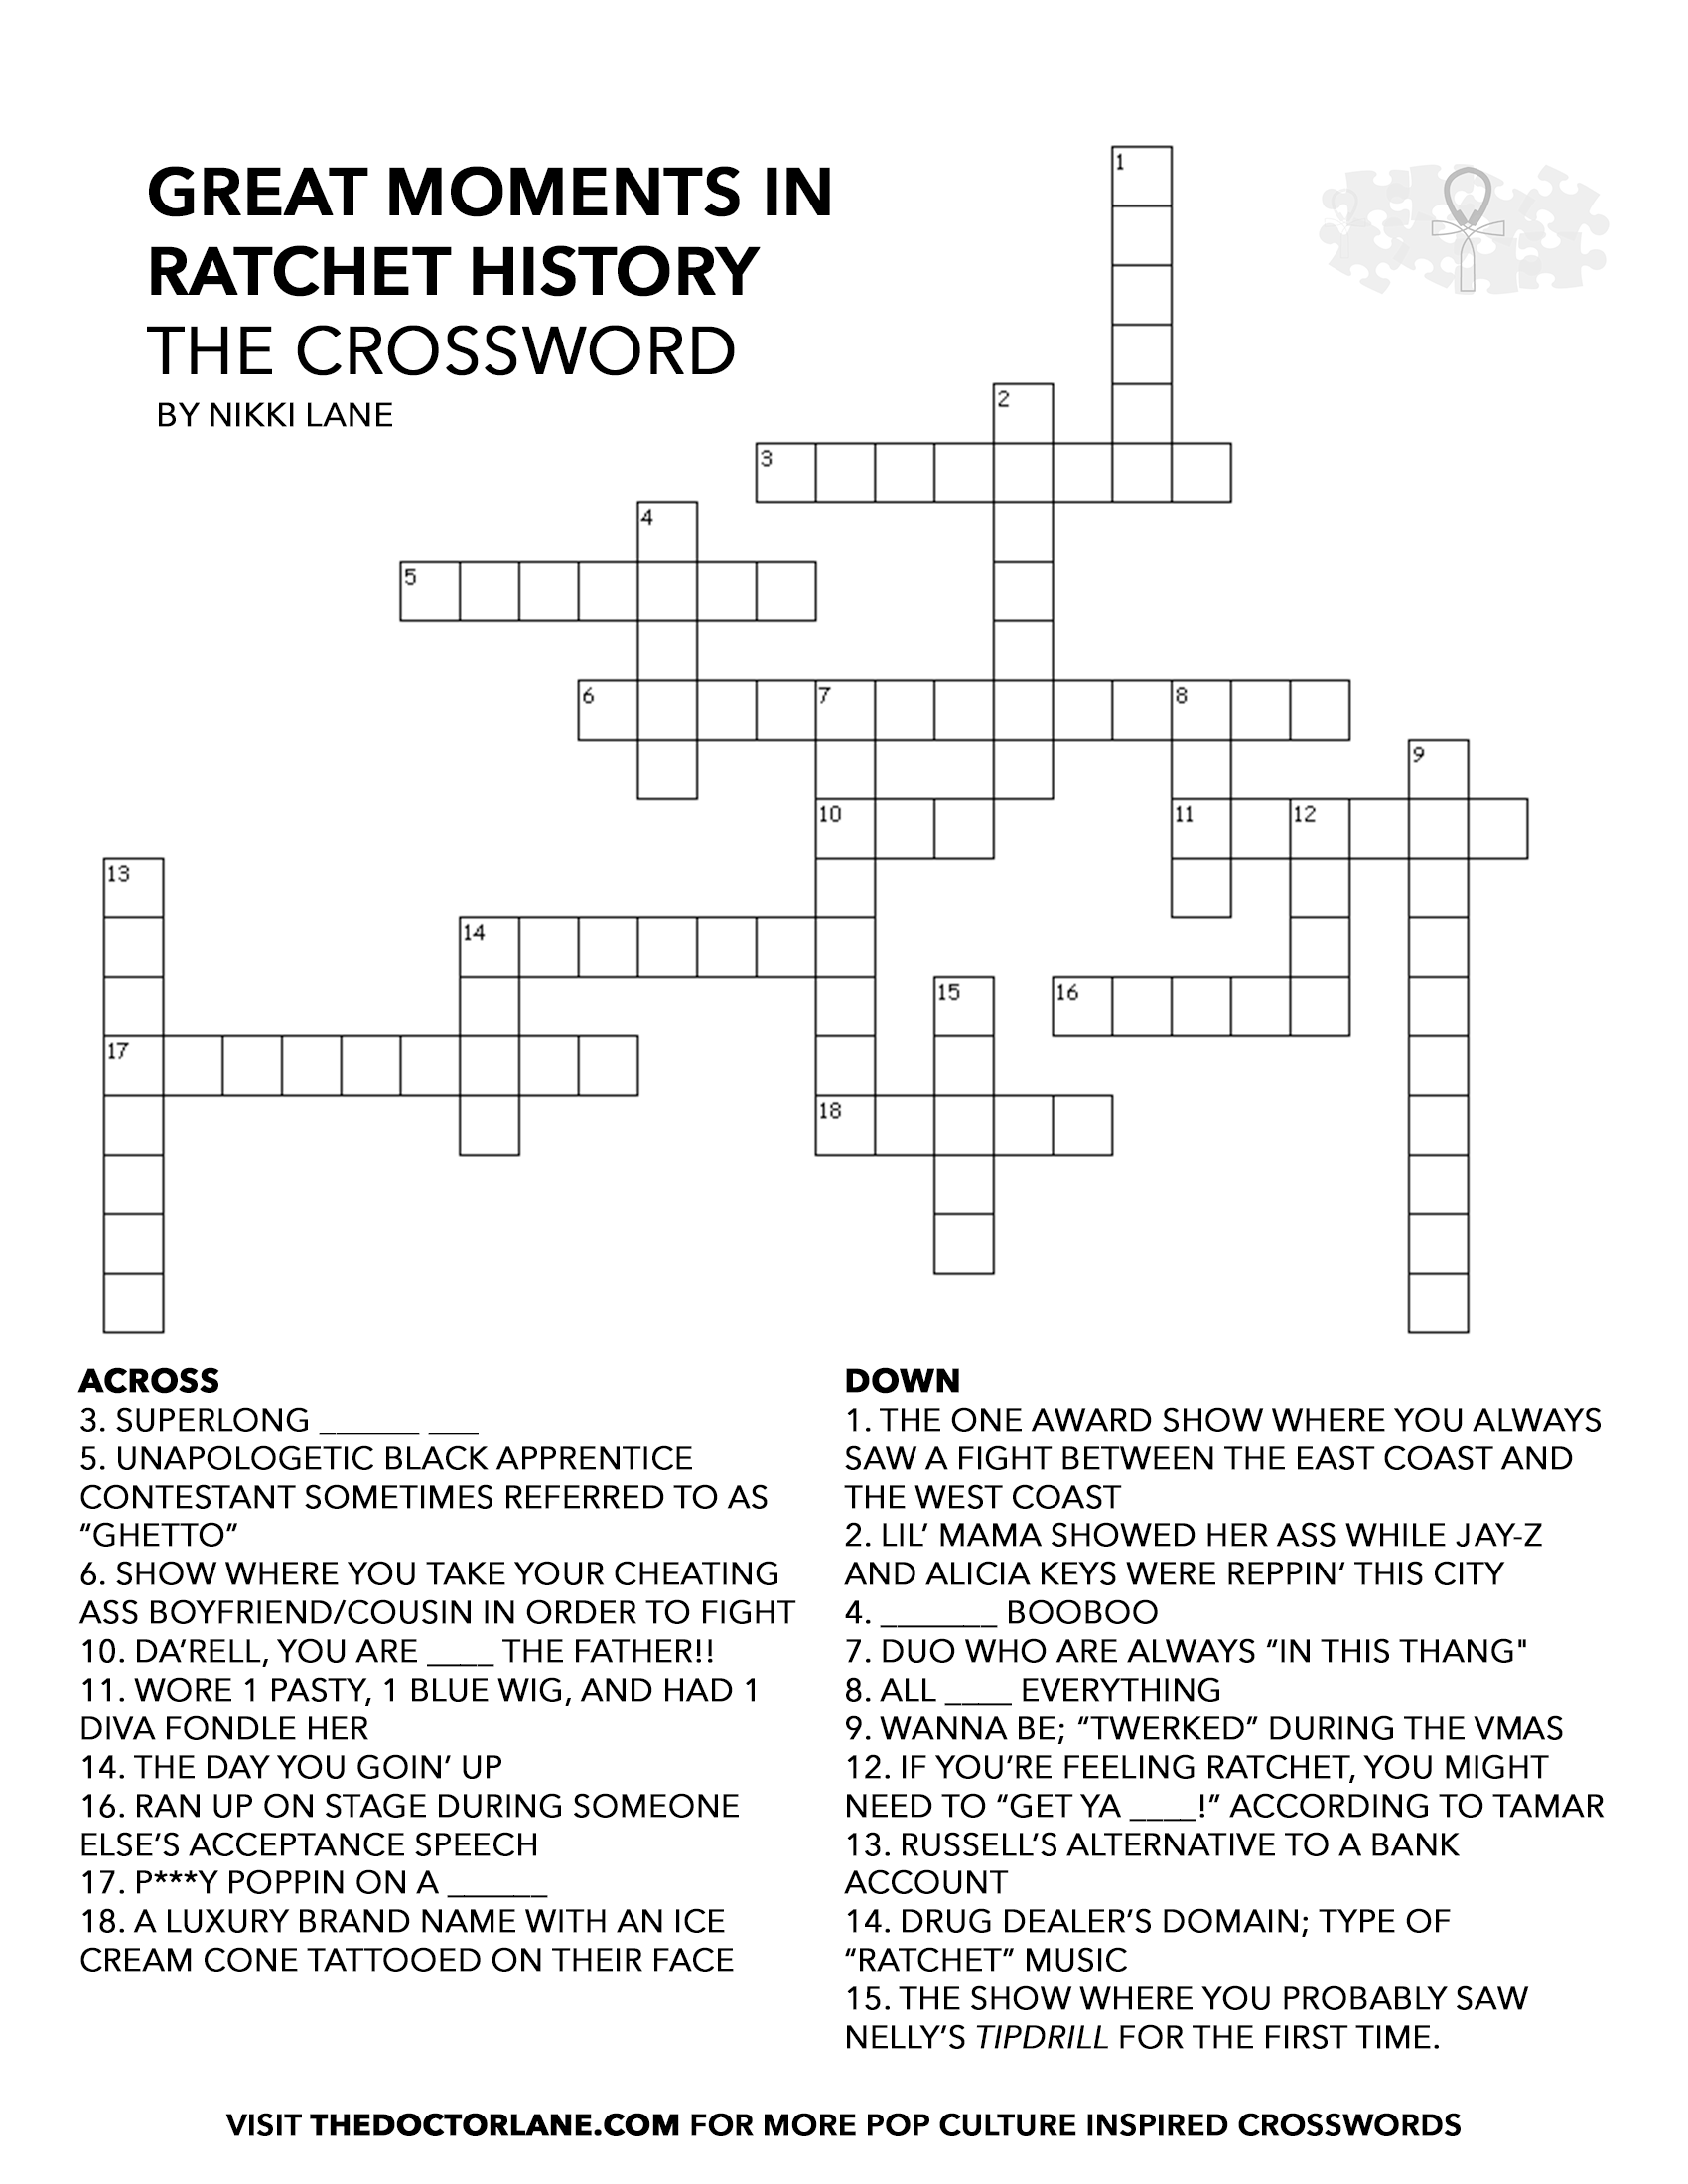 Great Moments in Ratchet History: The Crossword – Nikki Lane, Ph.D